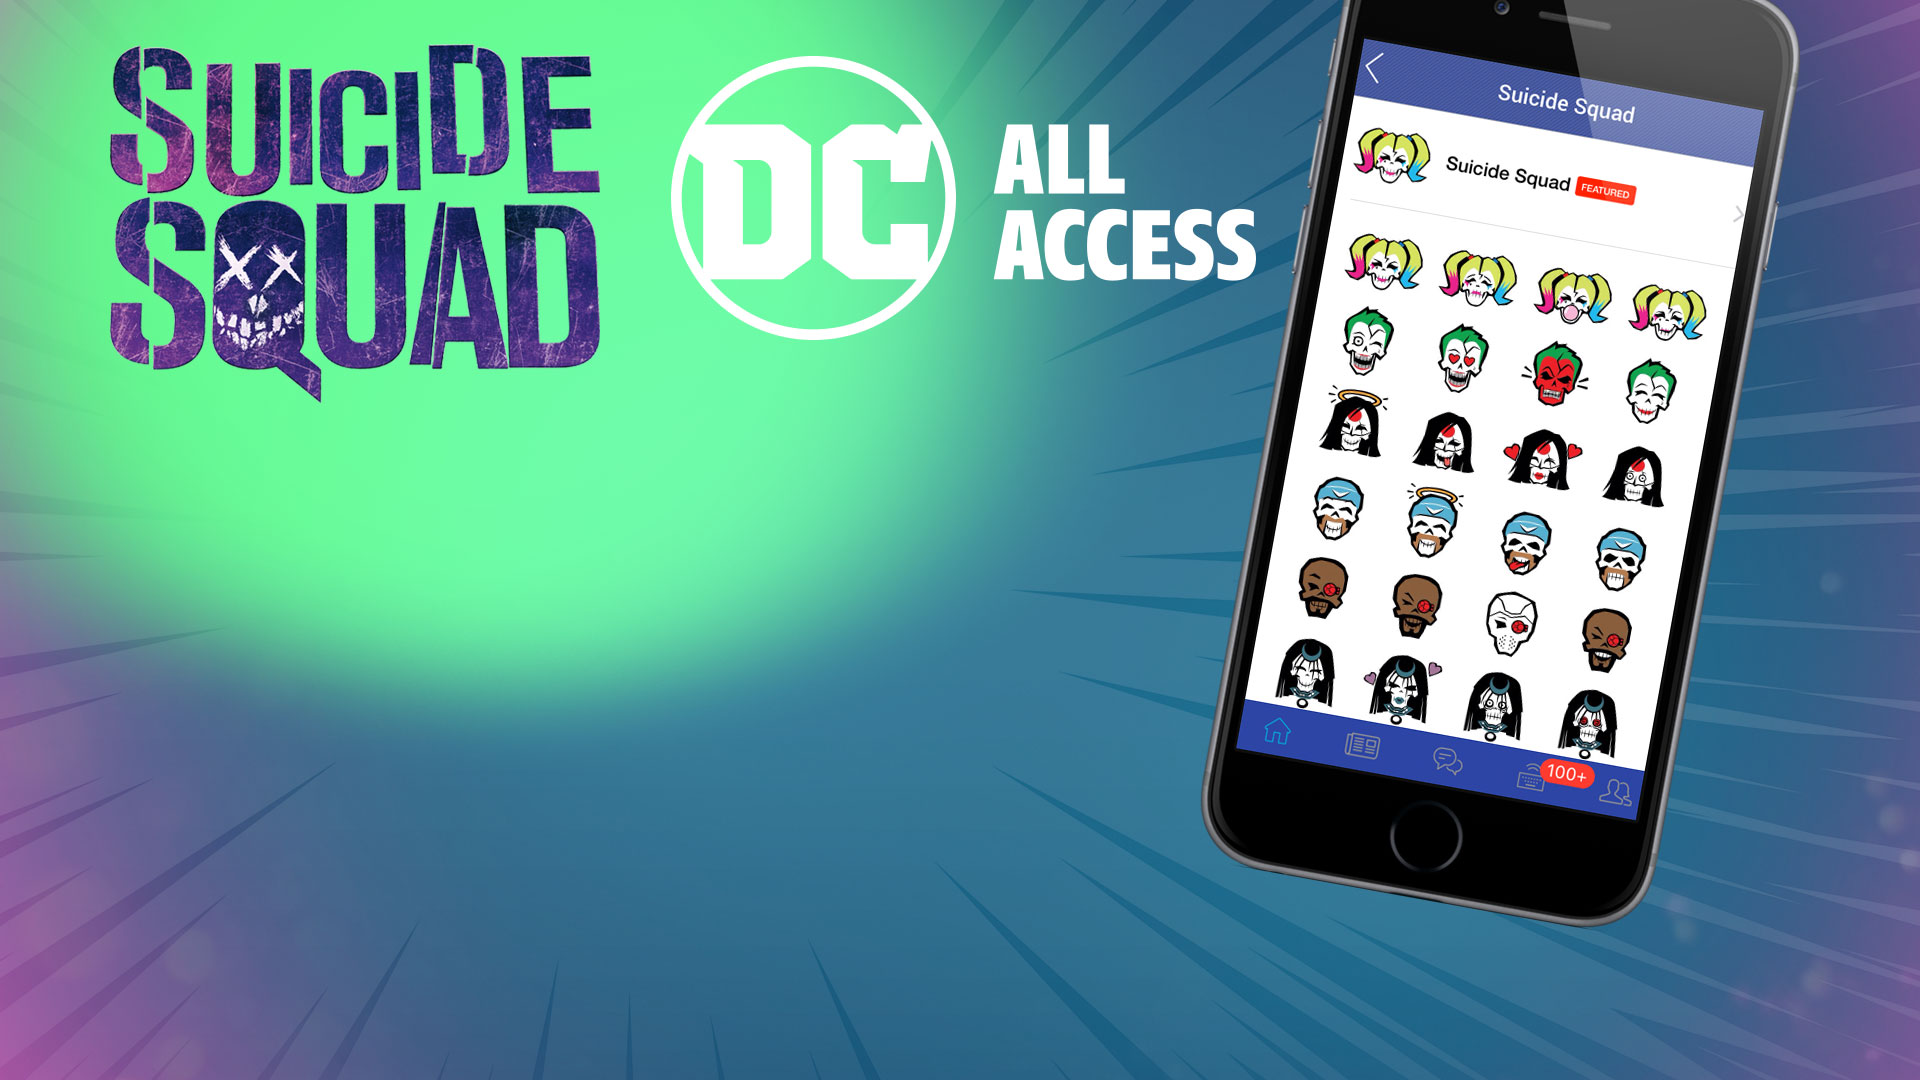 New Suicide Squad Emoji Pack: Step by Step | DC